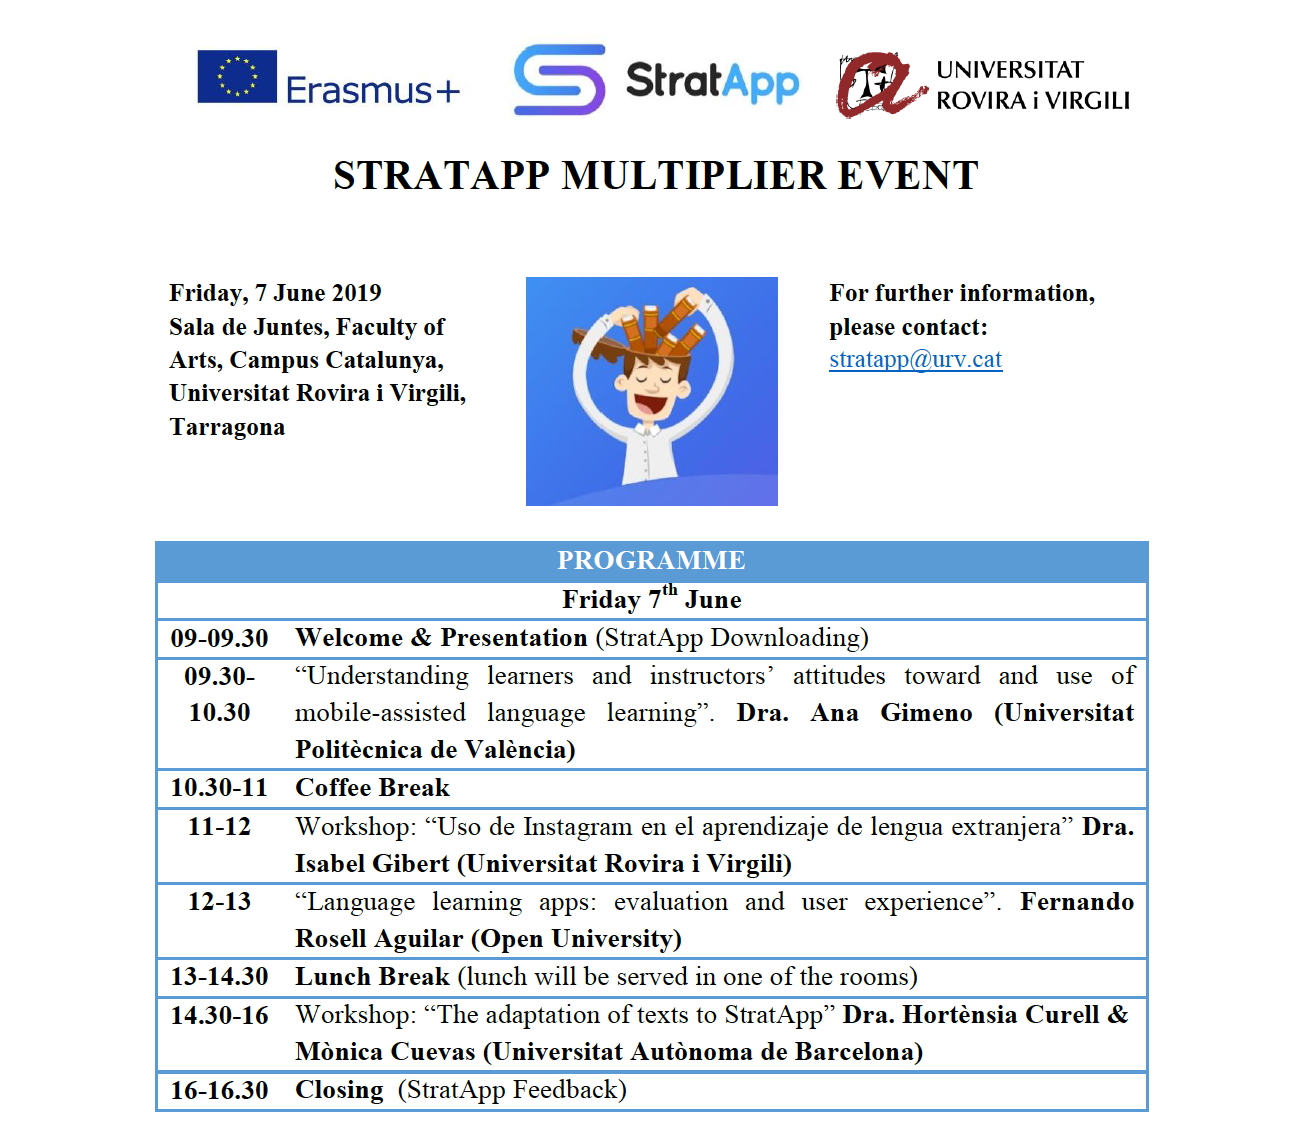 STRATAPP MULTIPLIER EVENT